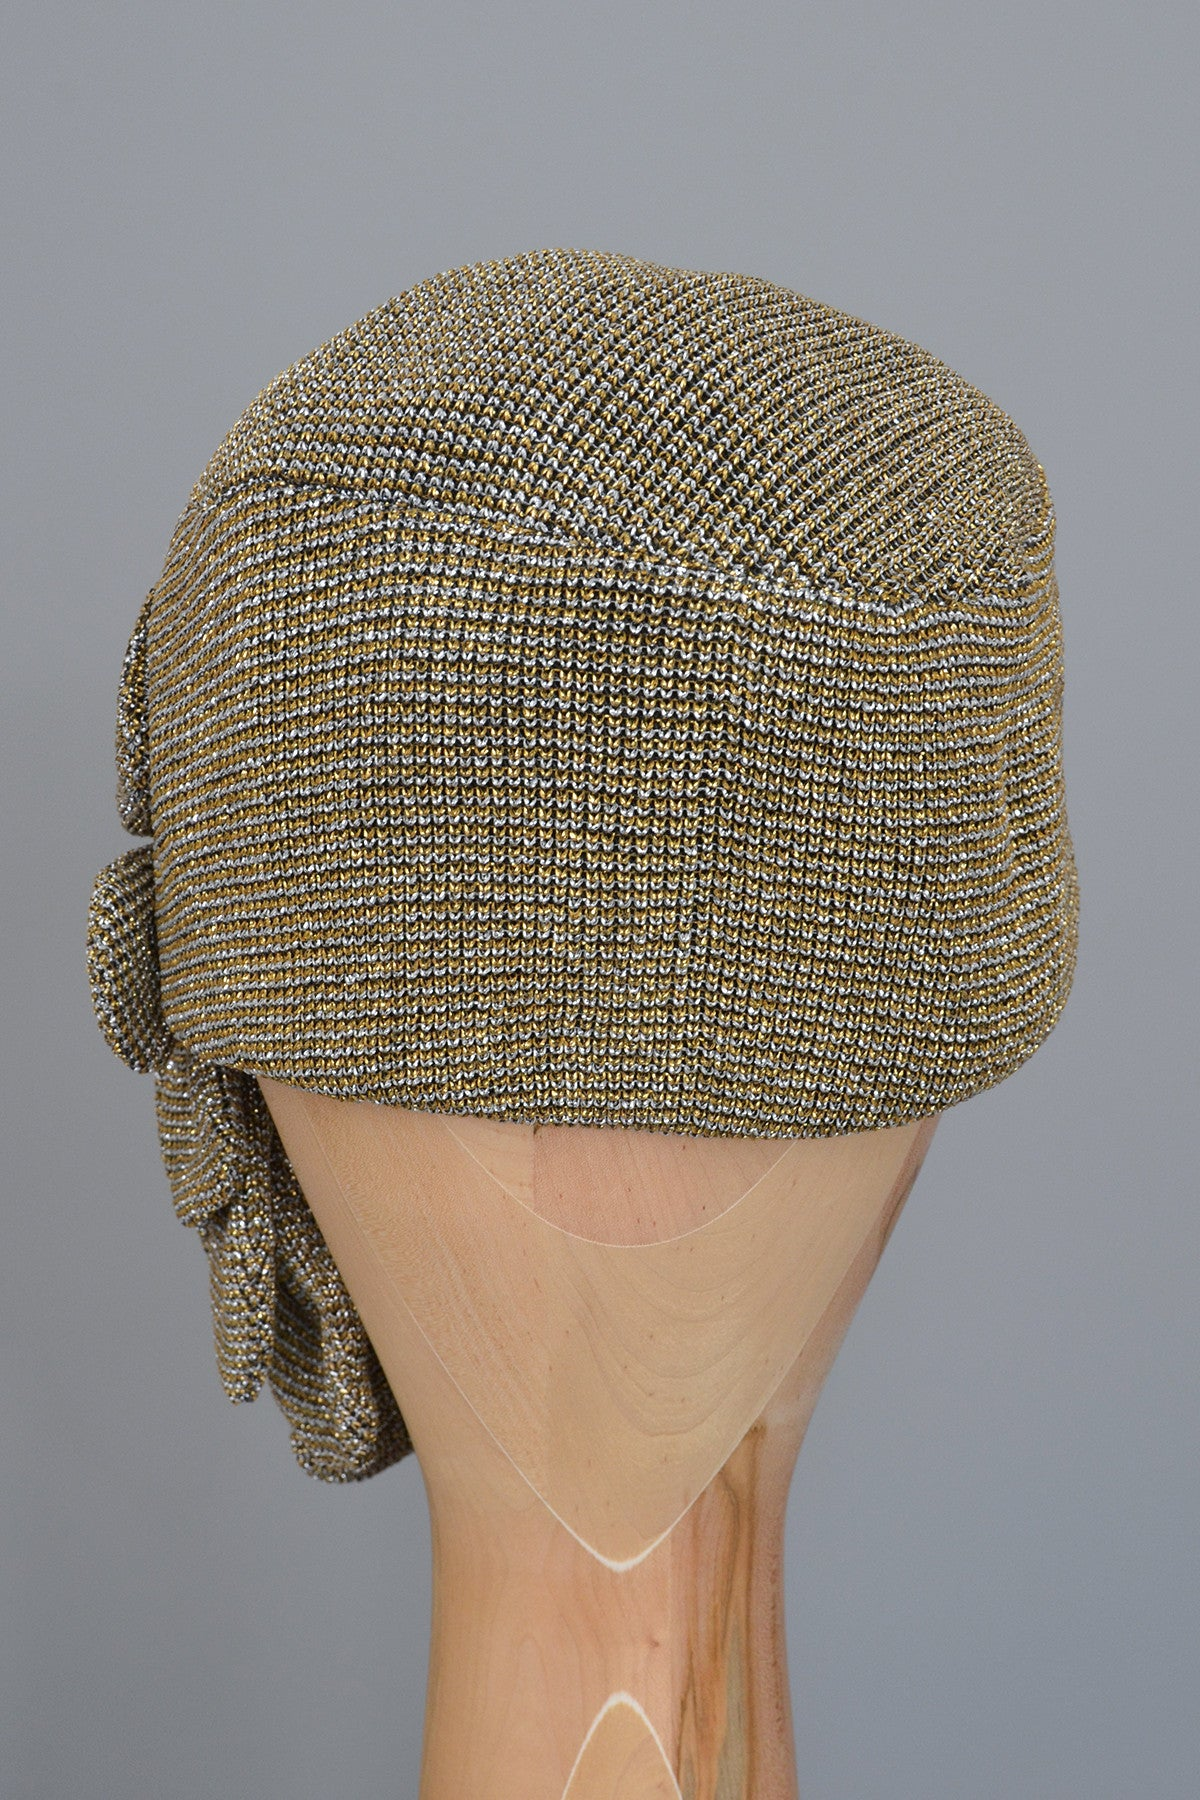 Vintage 1950s Shimmery Gold Silver Metallic Cloche Turban